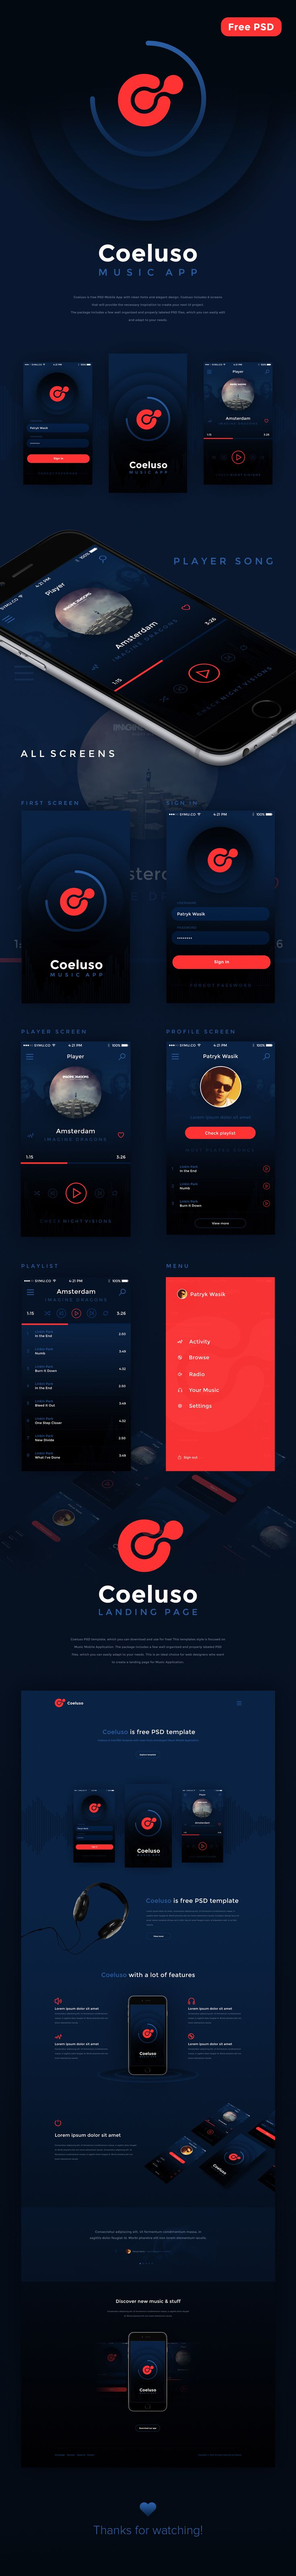 Coeluso is free PSD Mobile App with clean fonts and elegant design. Coeluso includes 6 screens that will provide the necessary inspiration to create your next UI project. The package includes a few well organized and properly labeled PSD files, which you …